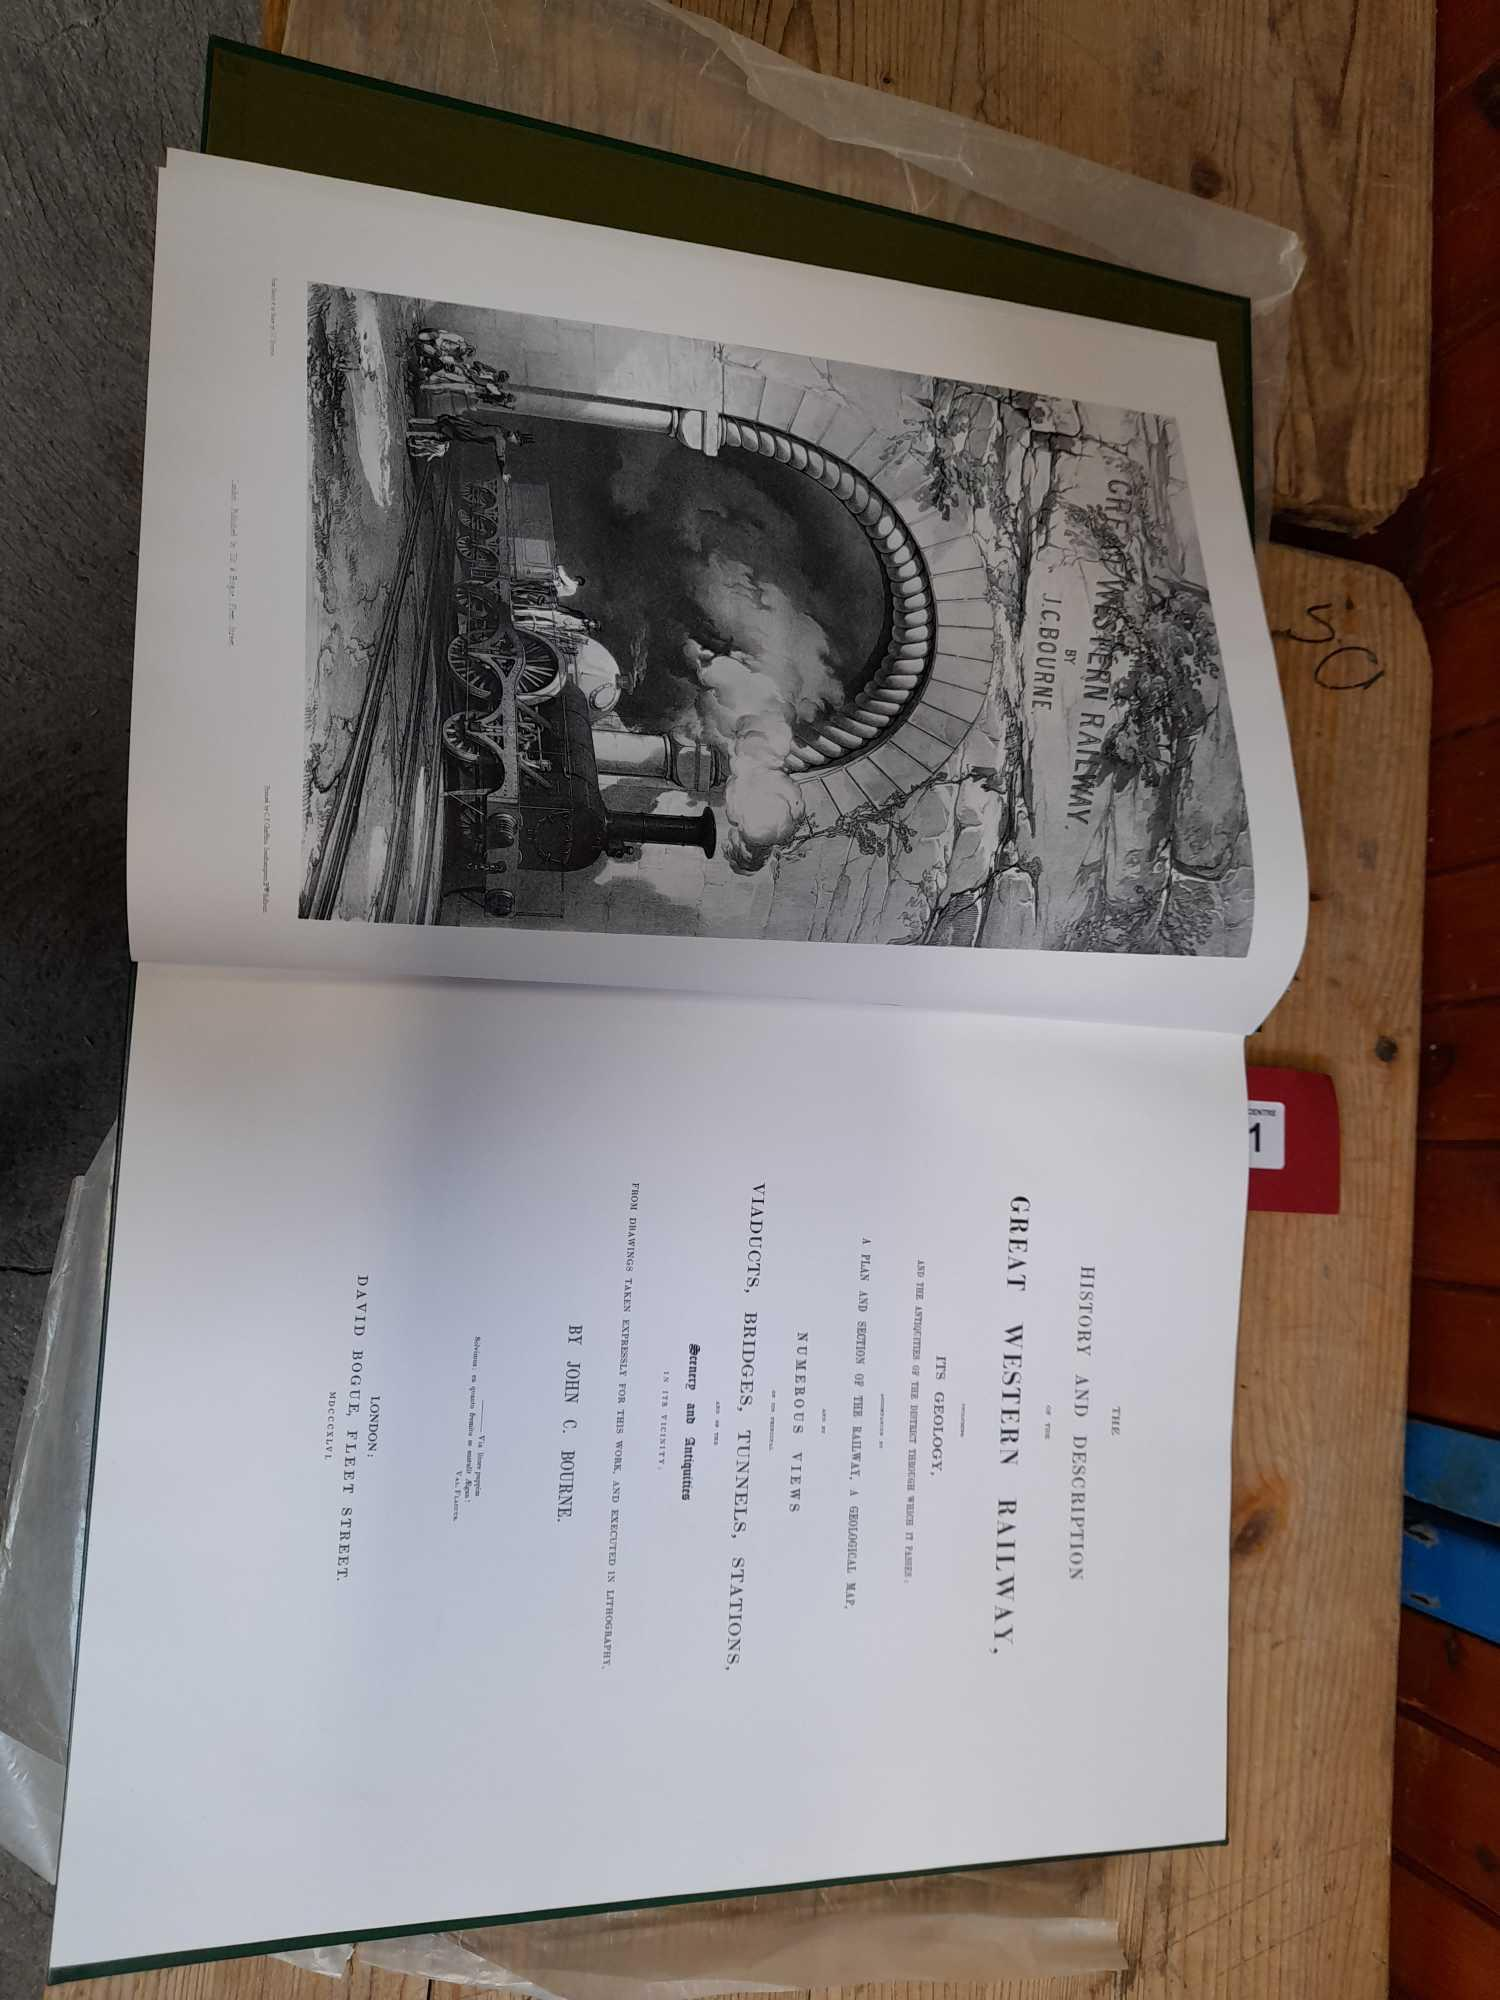 BOURNES GREAT WESTERN RAILWAY BOOK COPY 1 OF 500 - Image 3 of 9